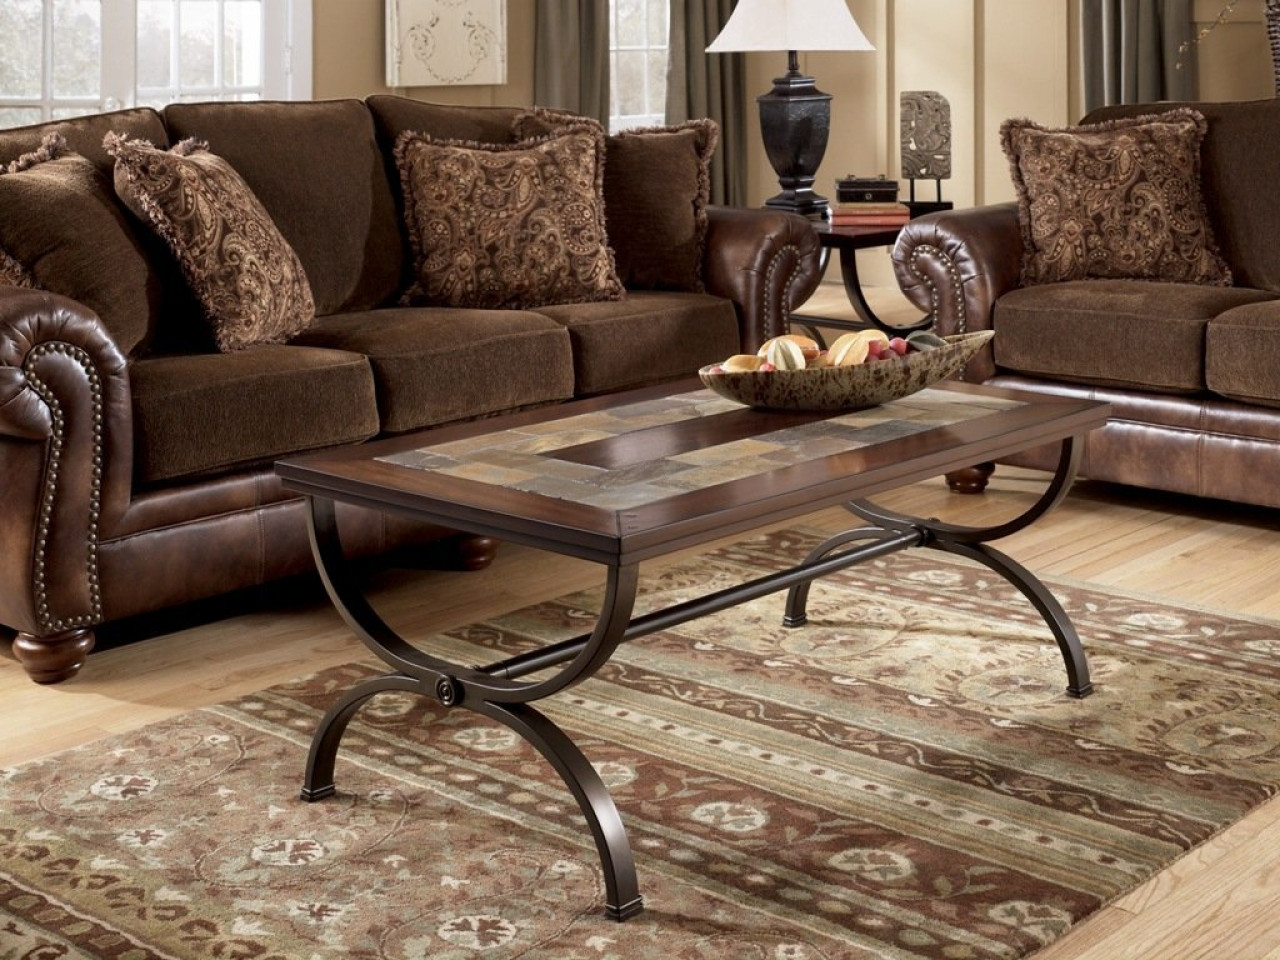 Best ideas about Ashley Furniture Coffee Tables . Save or Pin Round coffee table and end tables ashley tile top table Now.